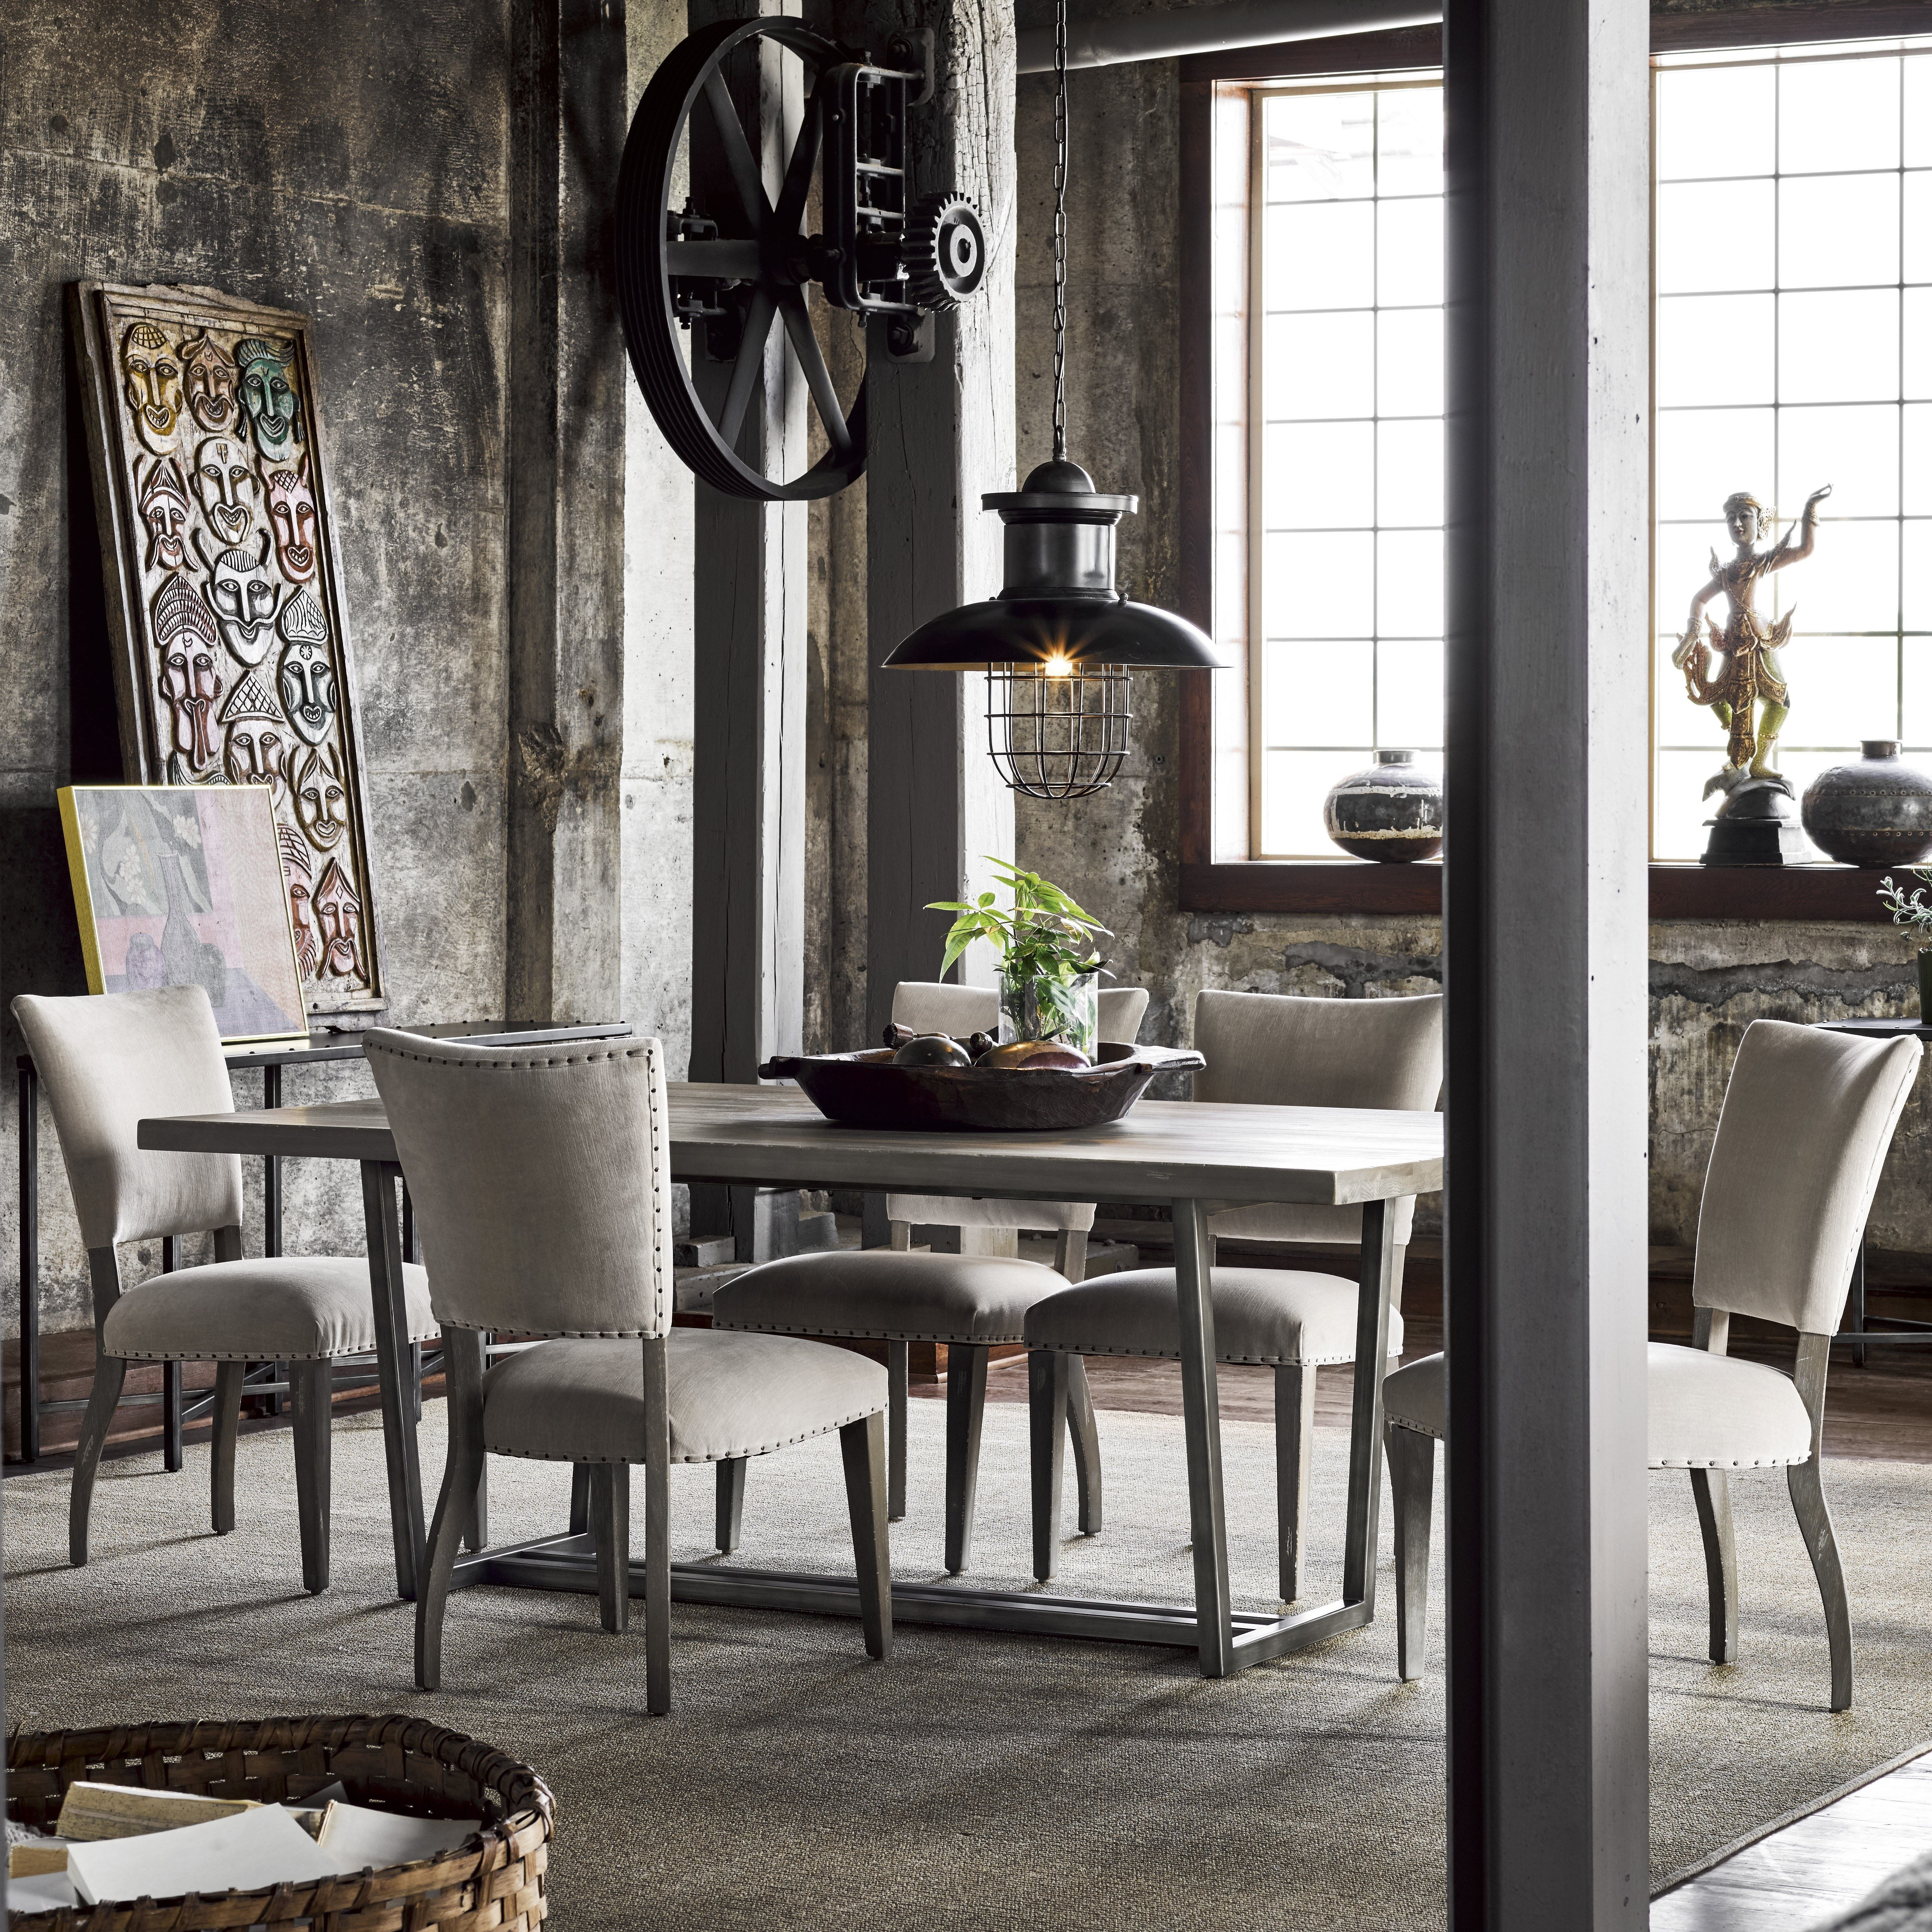 Jamesport Dining Table  Tables Dining Tables And Furniture Fascinating Universal Furniture Dining Room Set Inspiration